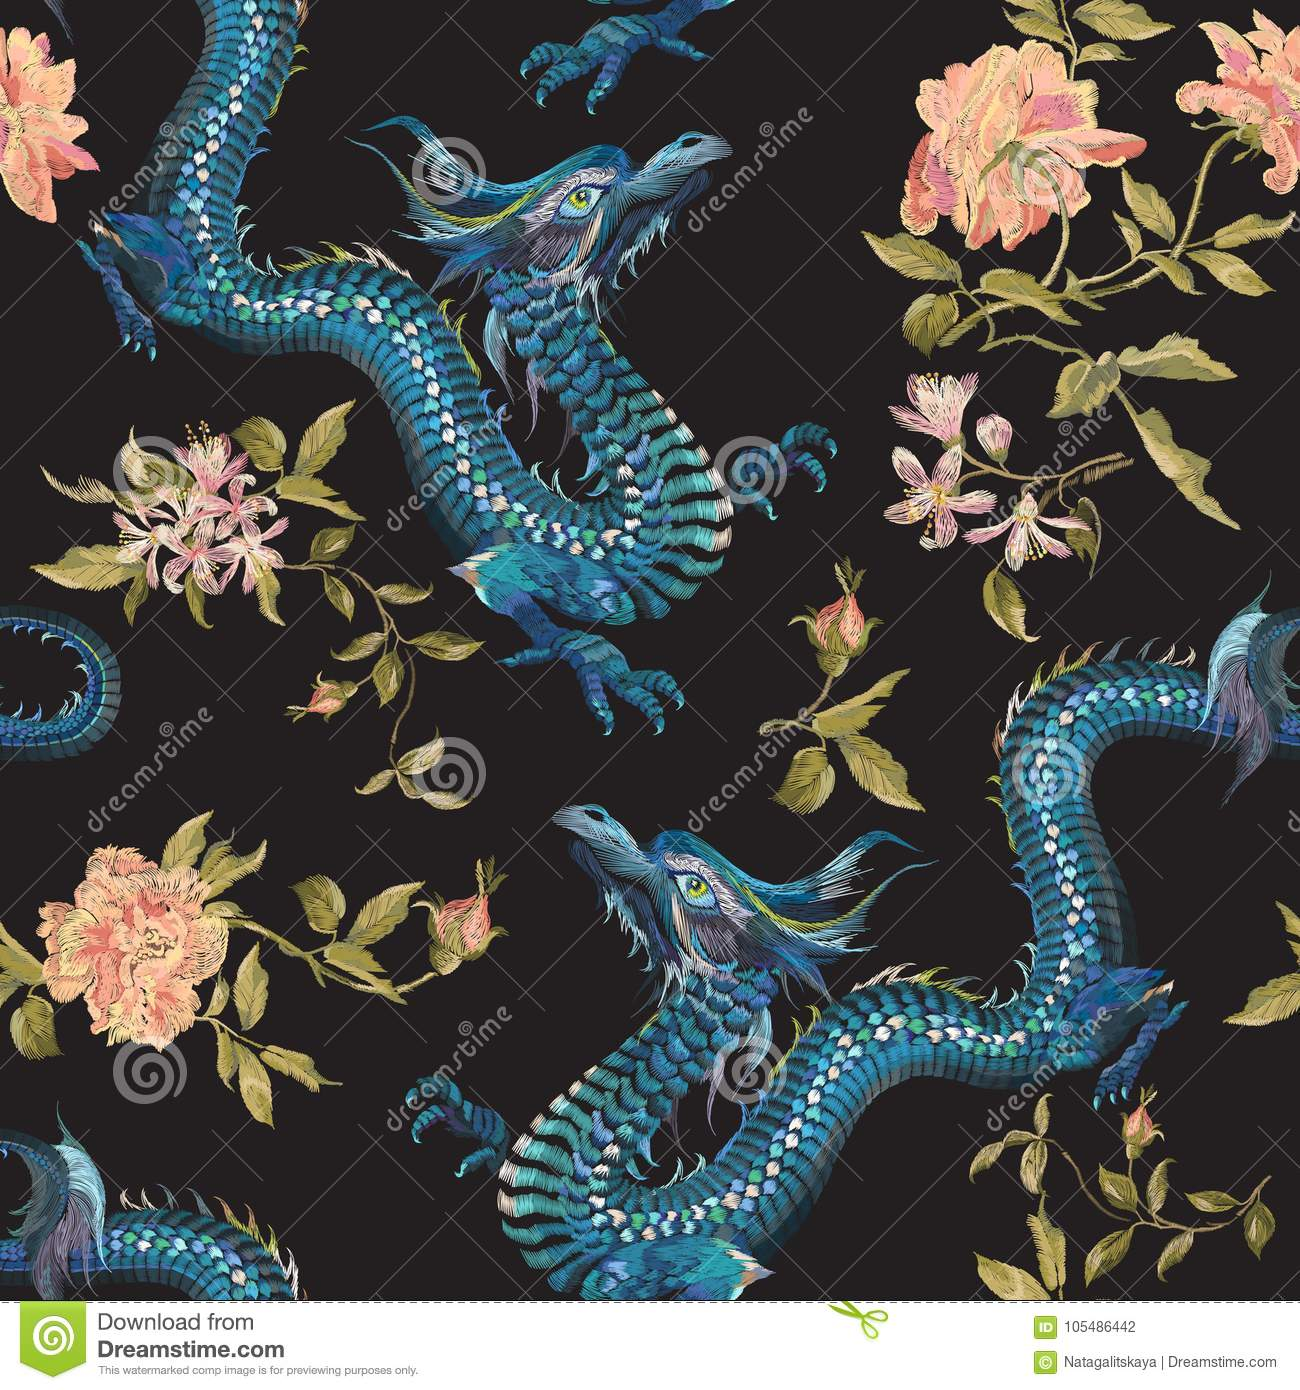 Embroidery oriental floral pattern with dragons and gold roses.